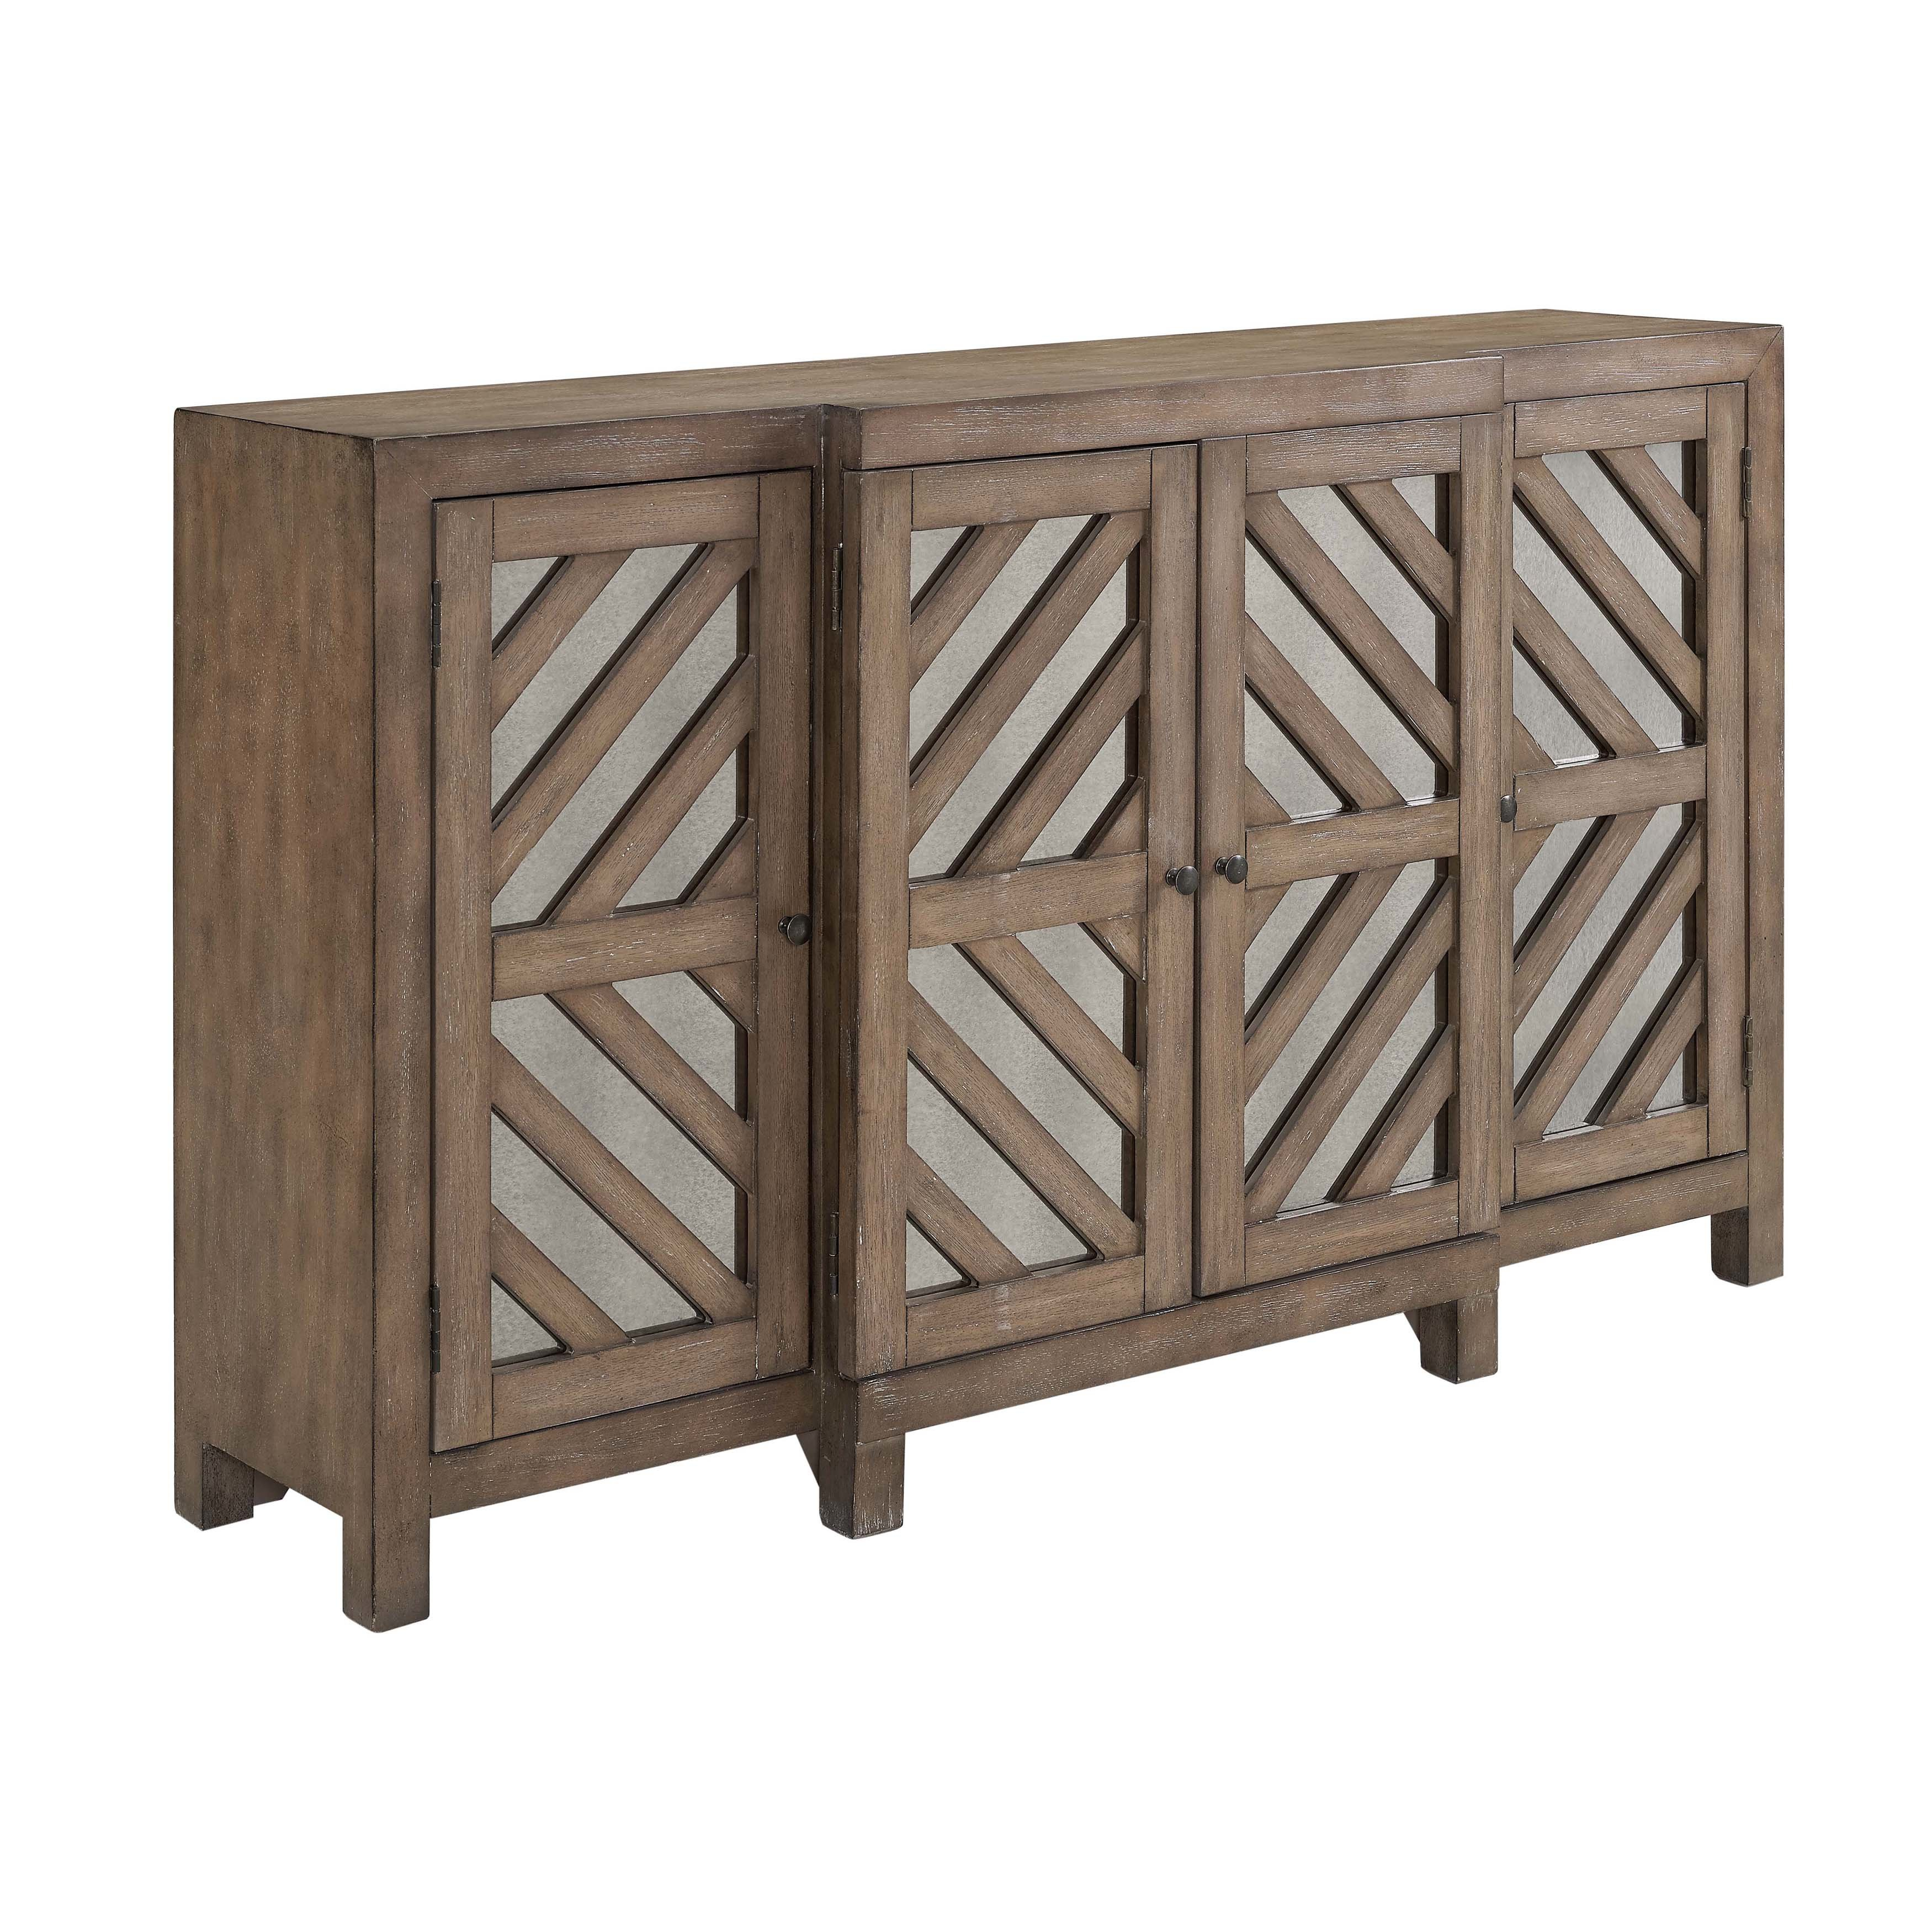 Farmhouse & Rustic Sideboards & Buffets | Birch Lane With Industrial Style 3 Drawer Buffets (View 14 of 30)